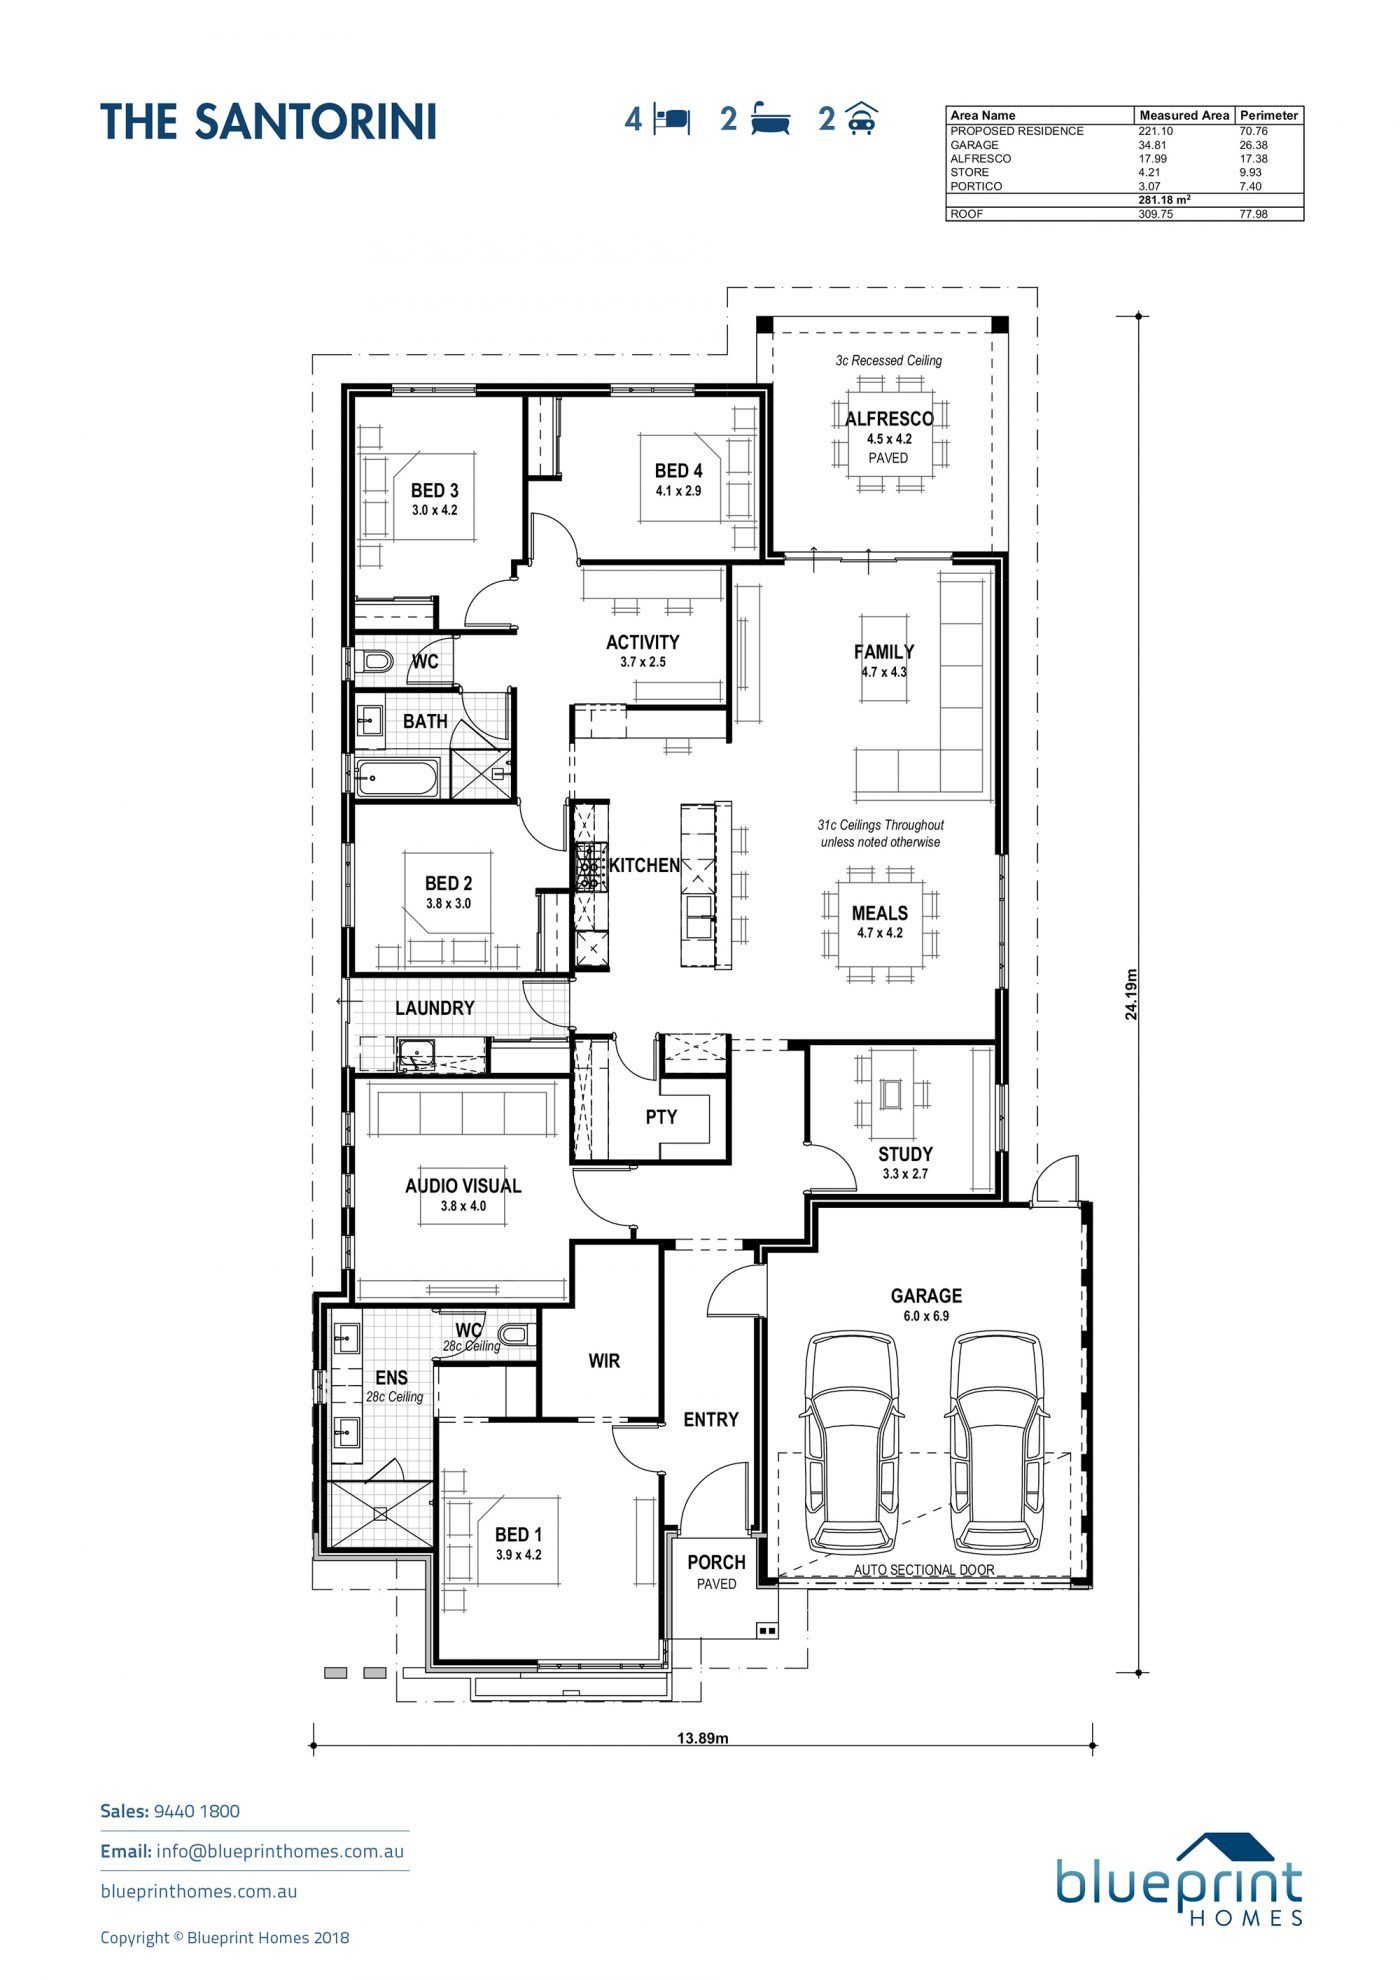 The Santorini Perth Ex Display Home In 2020 House Blueprints Display Homes Best House Plans